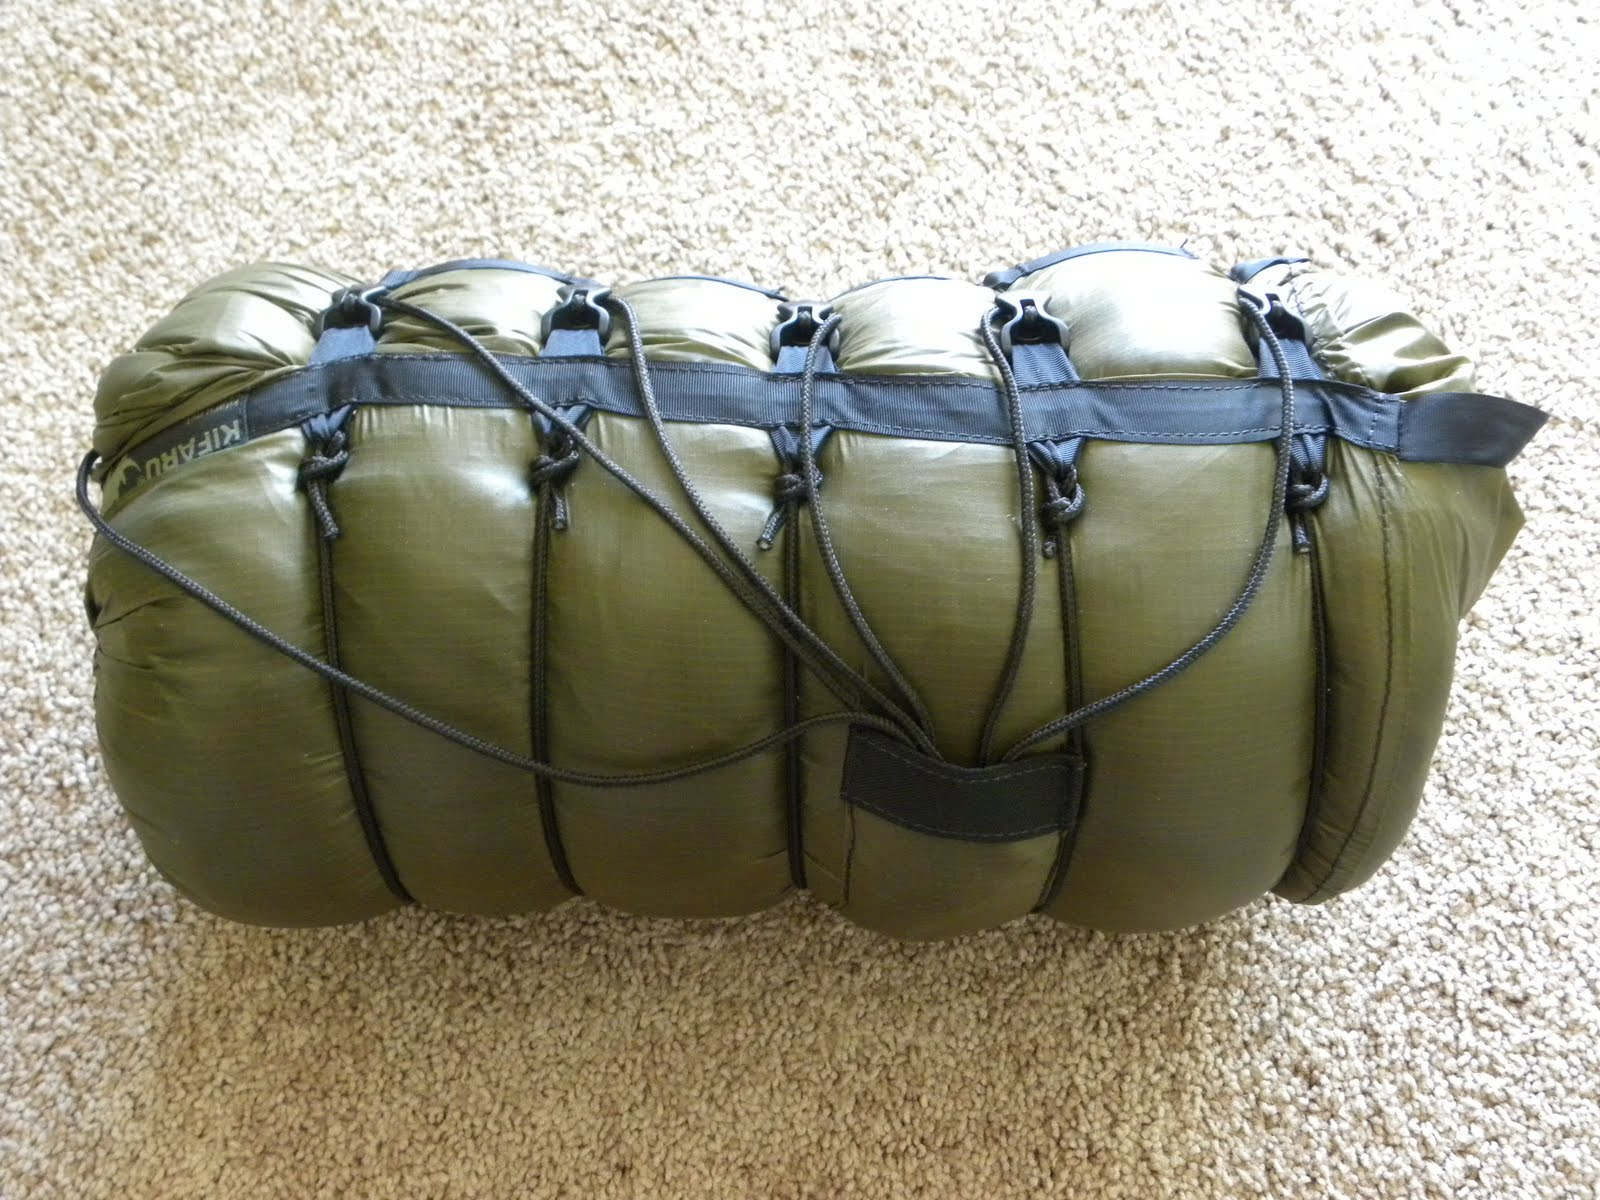 Here Is My Kifaru Regulator Compression Stuff Sack Though It Does Not House A Sleeping Bag Still The Best I Have